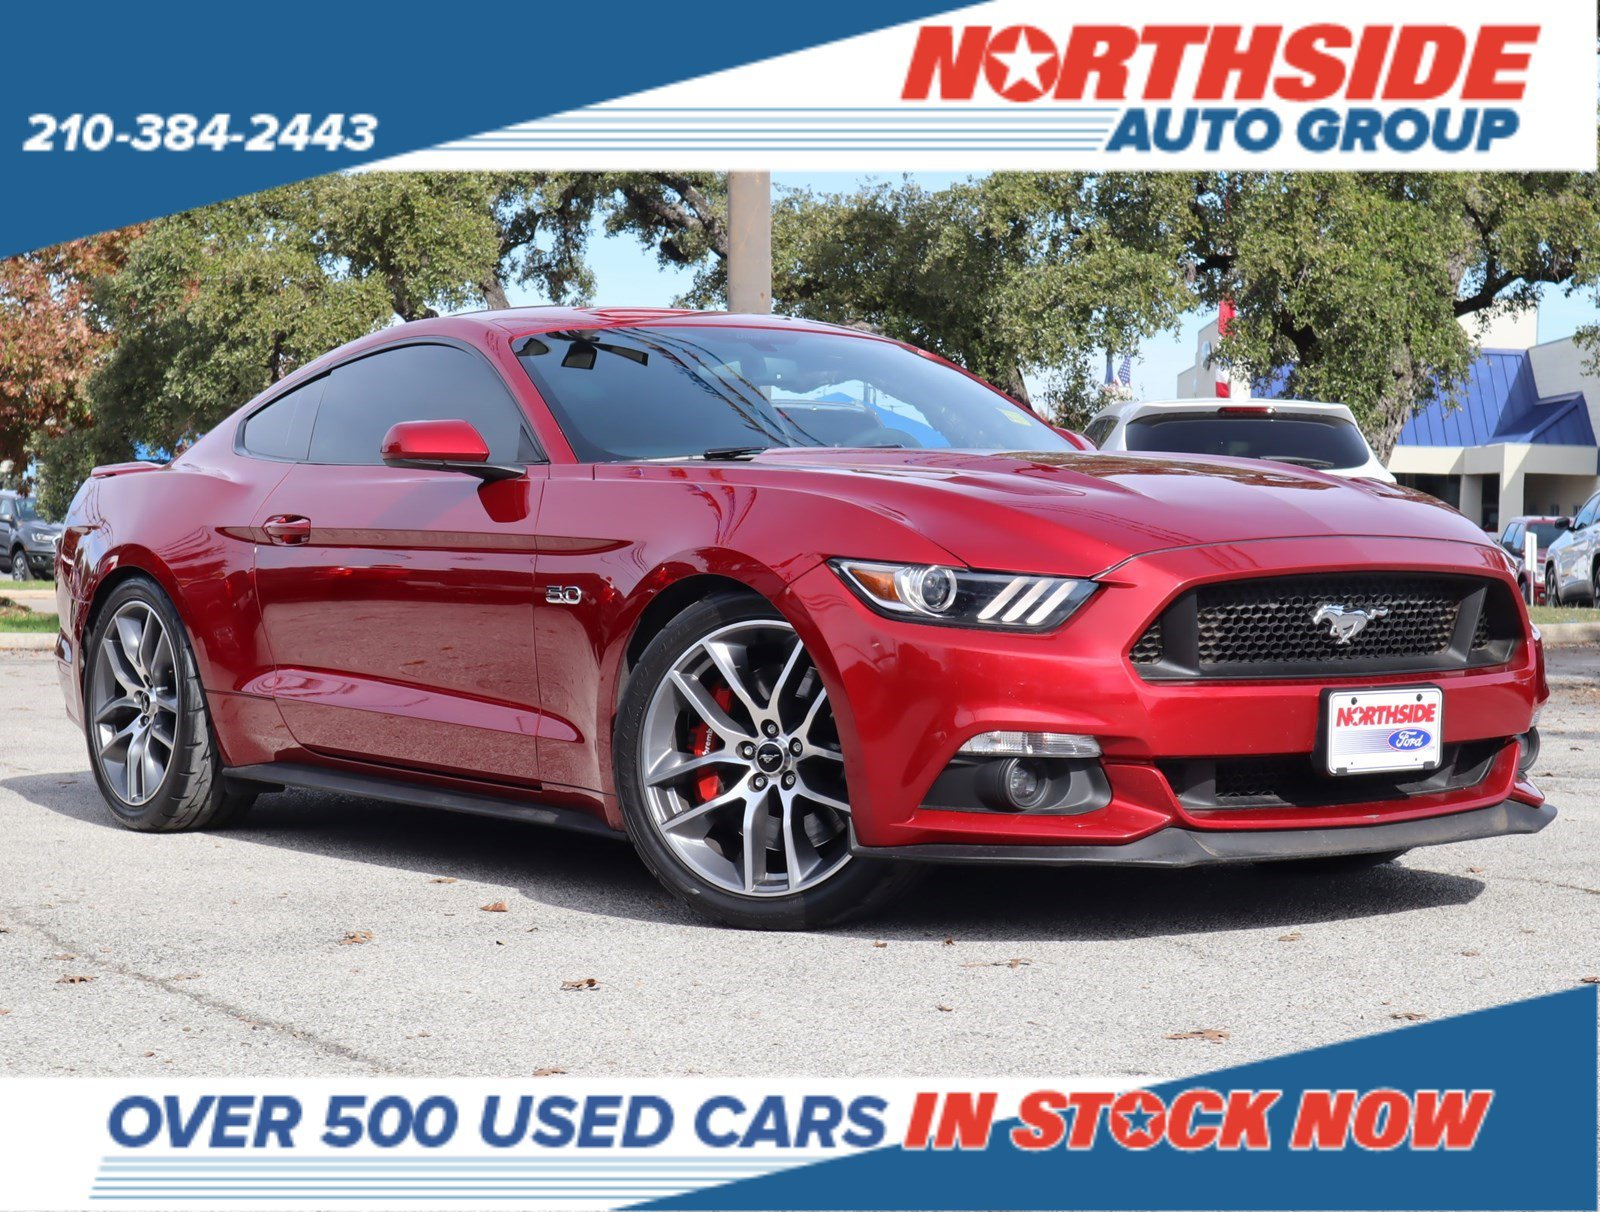 2017 Ford Mustang GT image